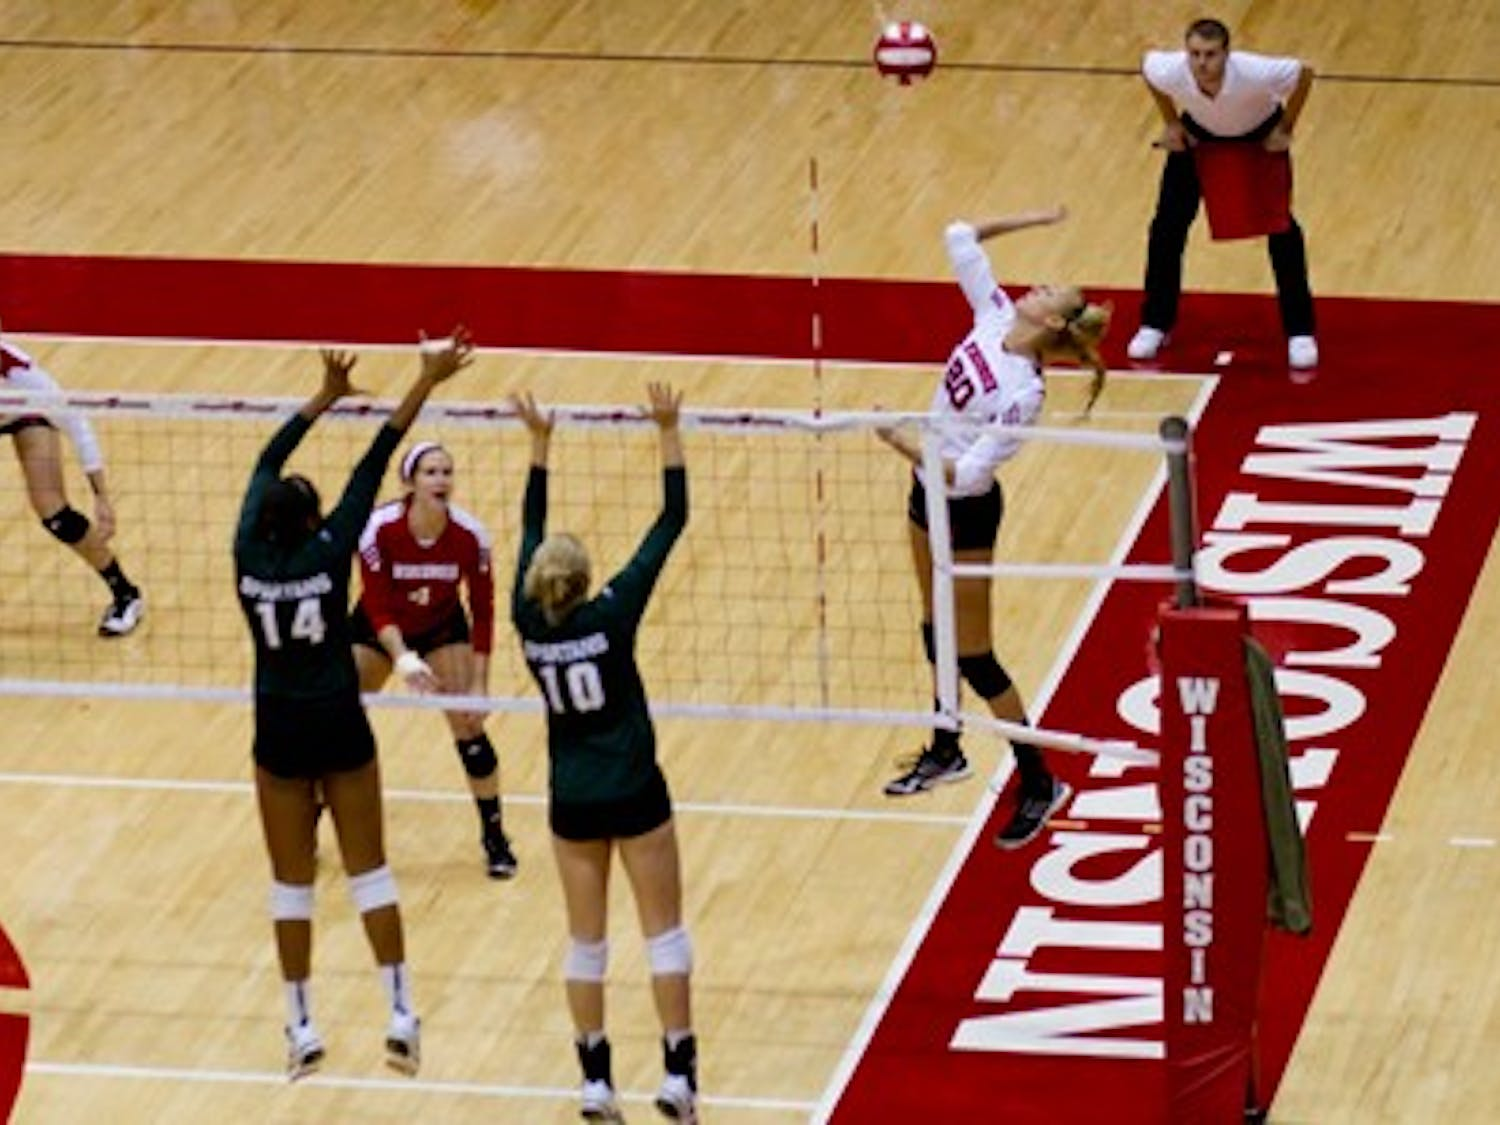 Sophomore outside hitter Ellen Chapman led the Badgers with 13 kills in Wisconsin's loss to Minnesota Wednesday.